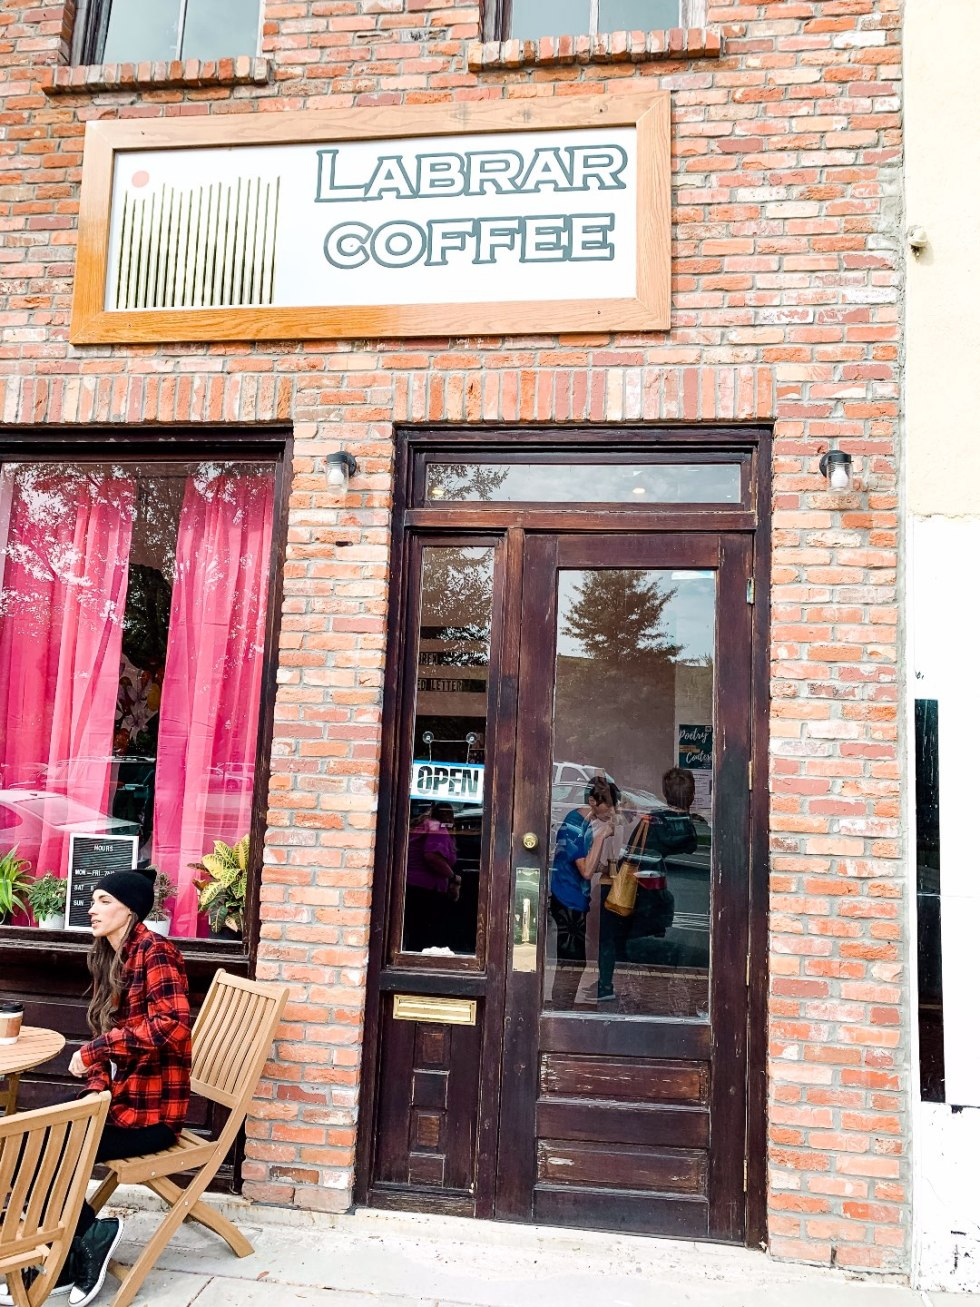 Eastern North Carolina Travel Guide: Top 10 Things to Do in Goldsboro NC by popular North Carolina blog, I'm Fixin' To: image of Labrar Coffee.